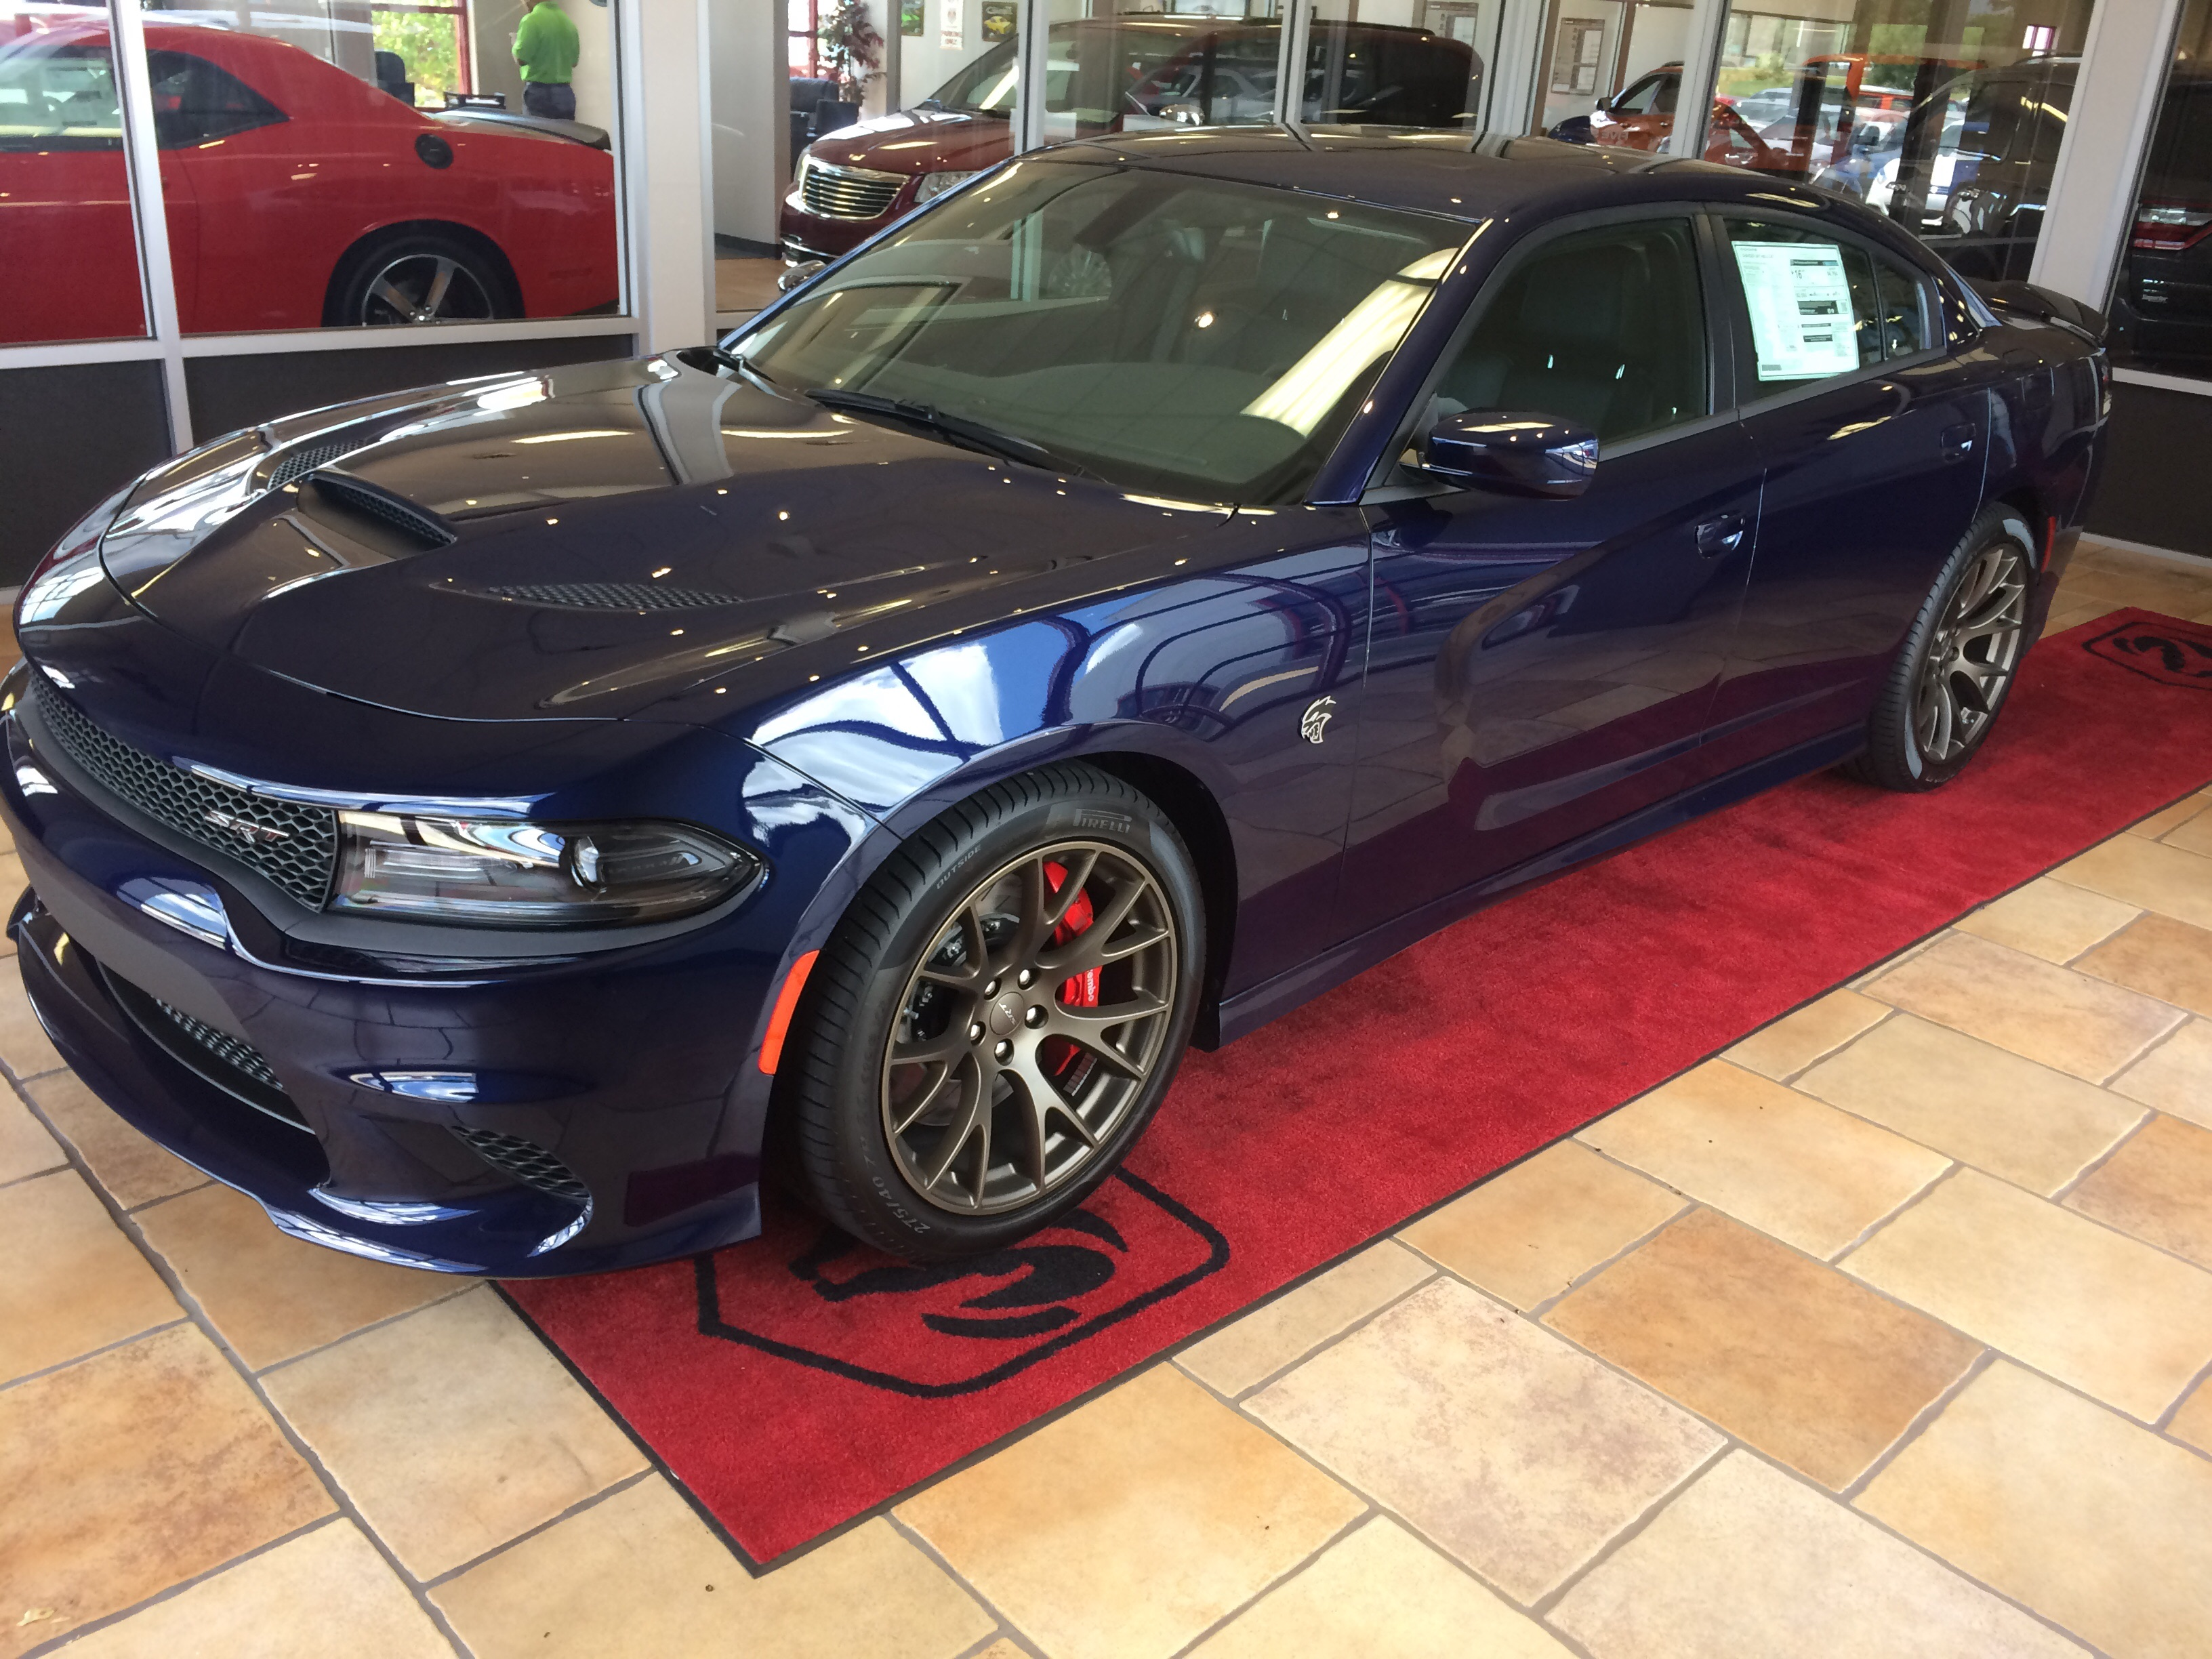 call my buddy brian t at superior dodge in conway ar they have one waiting for an owner its loaded - 2016 Dodge Charger Hellcat Blue